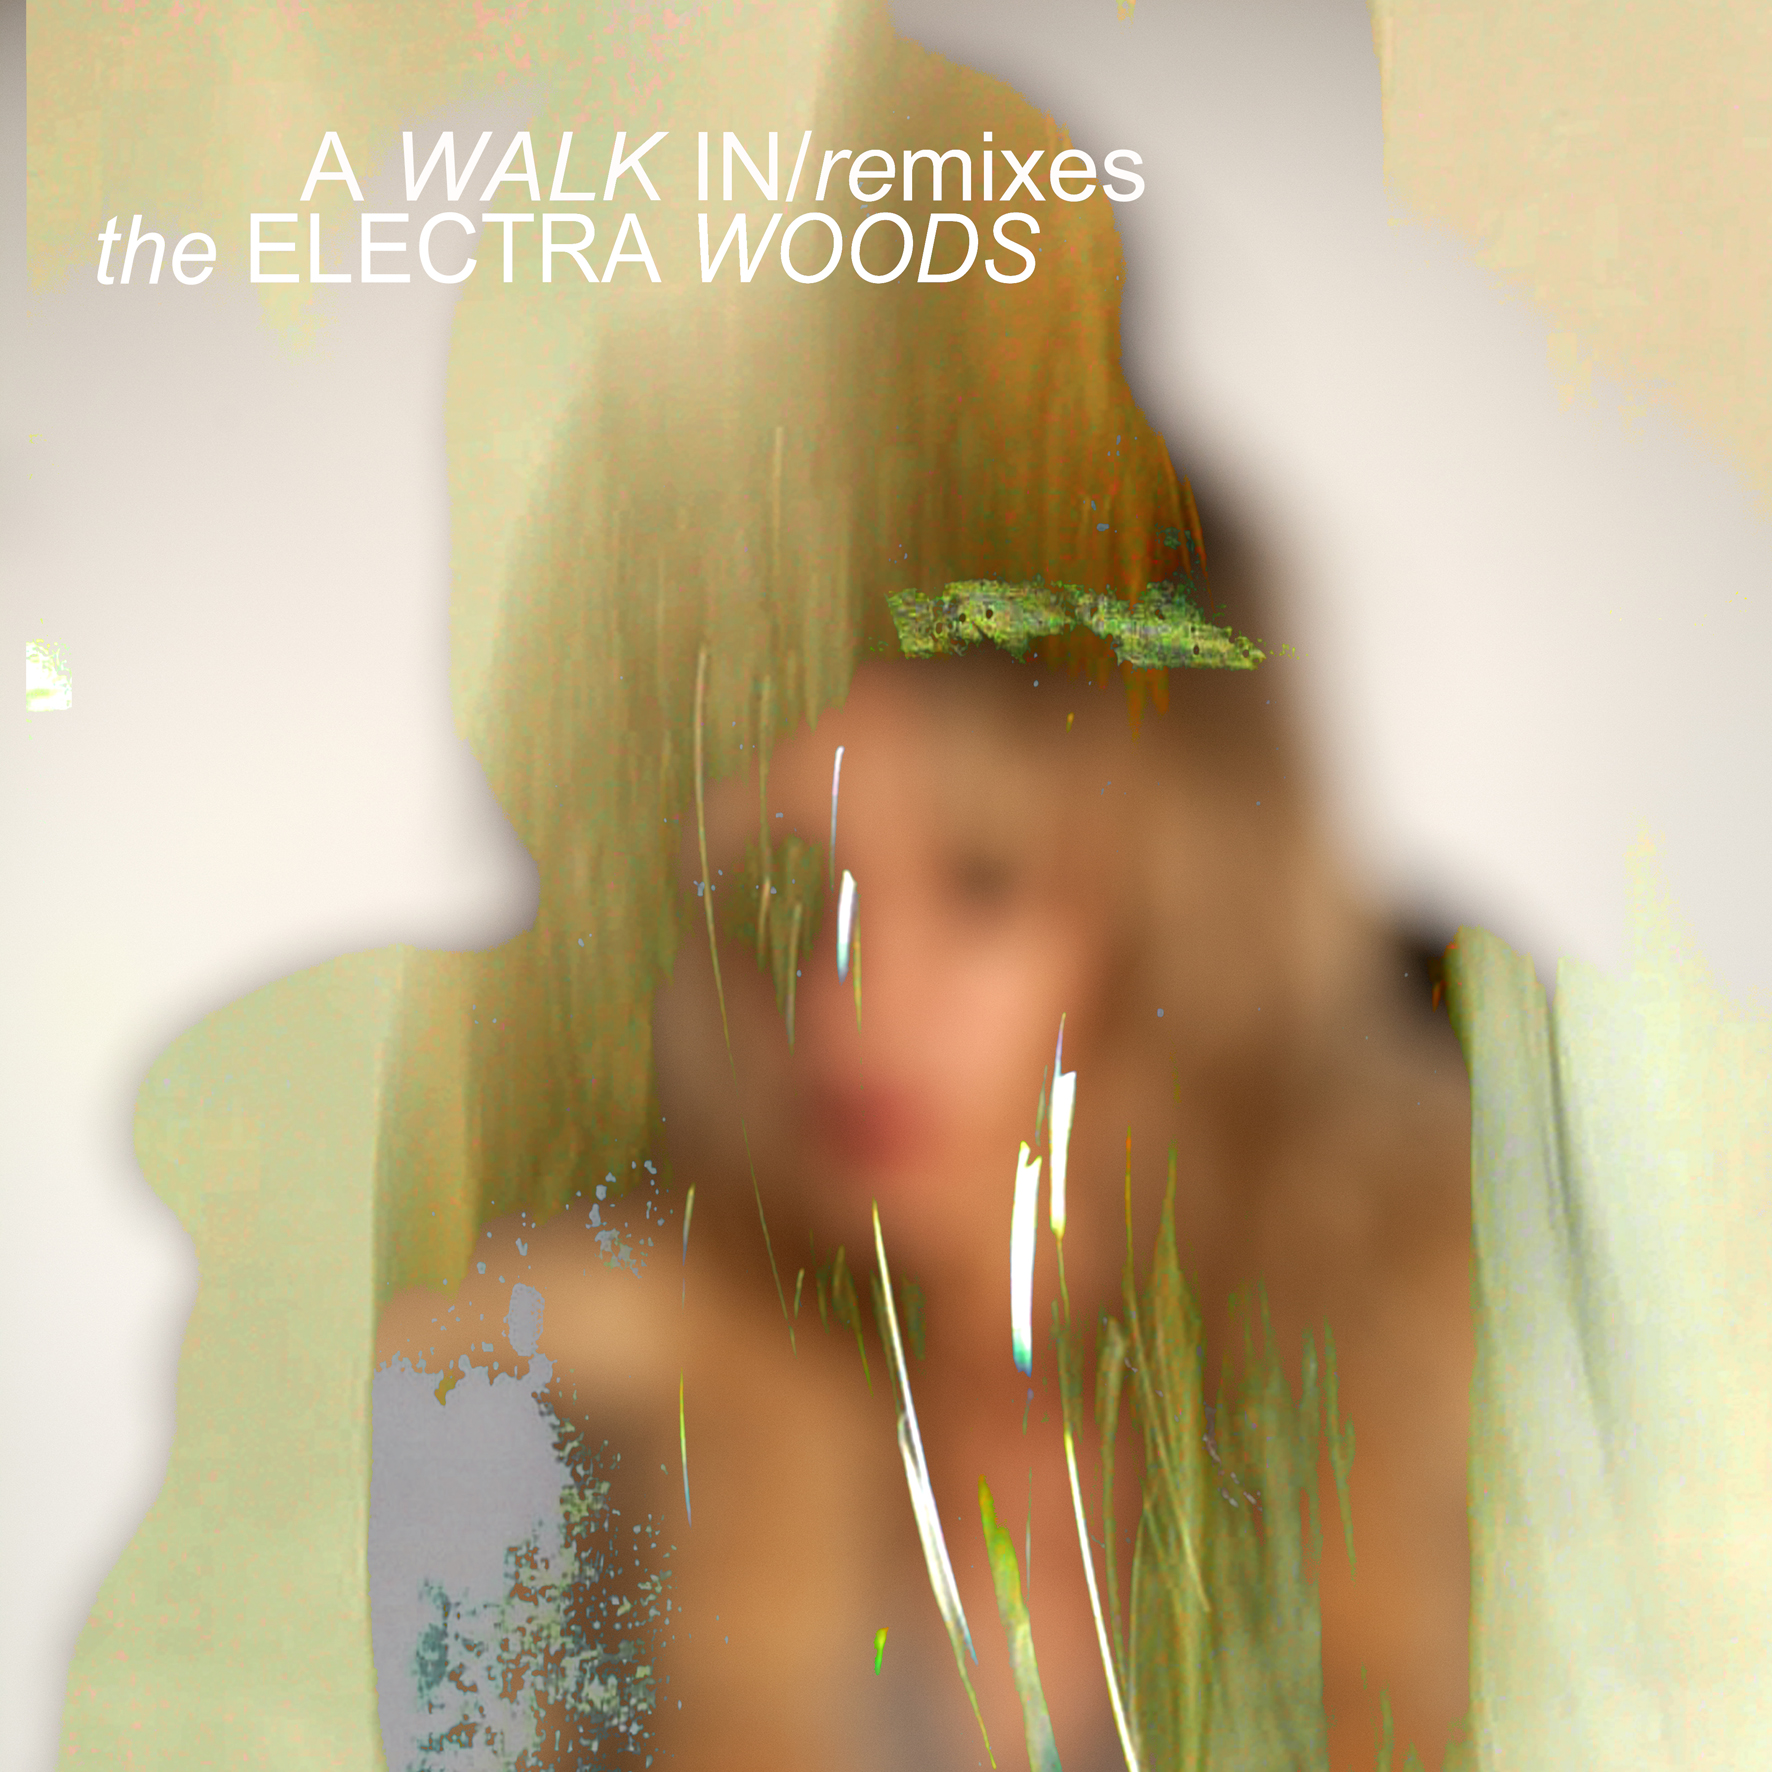 A WALK IN remixes The Electra Wood SML.jpg